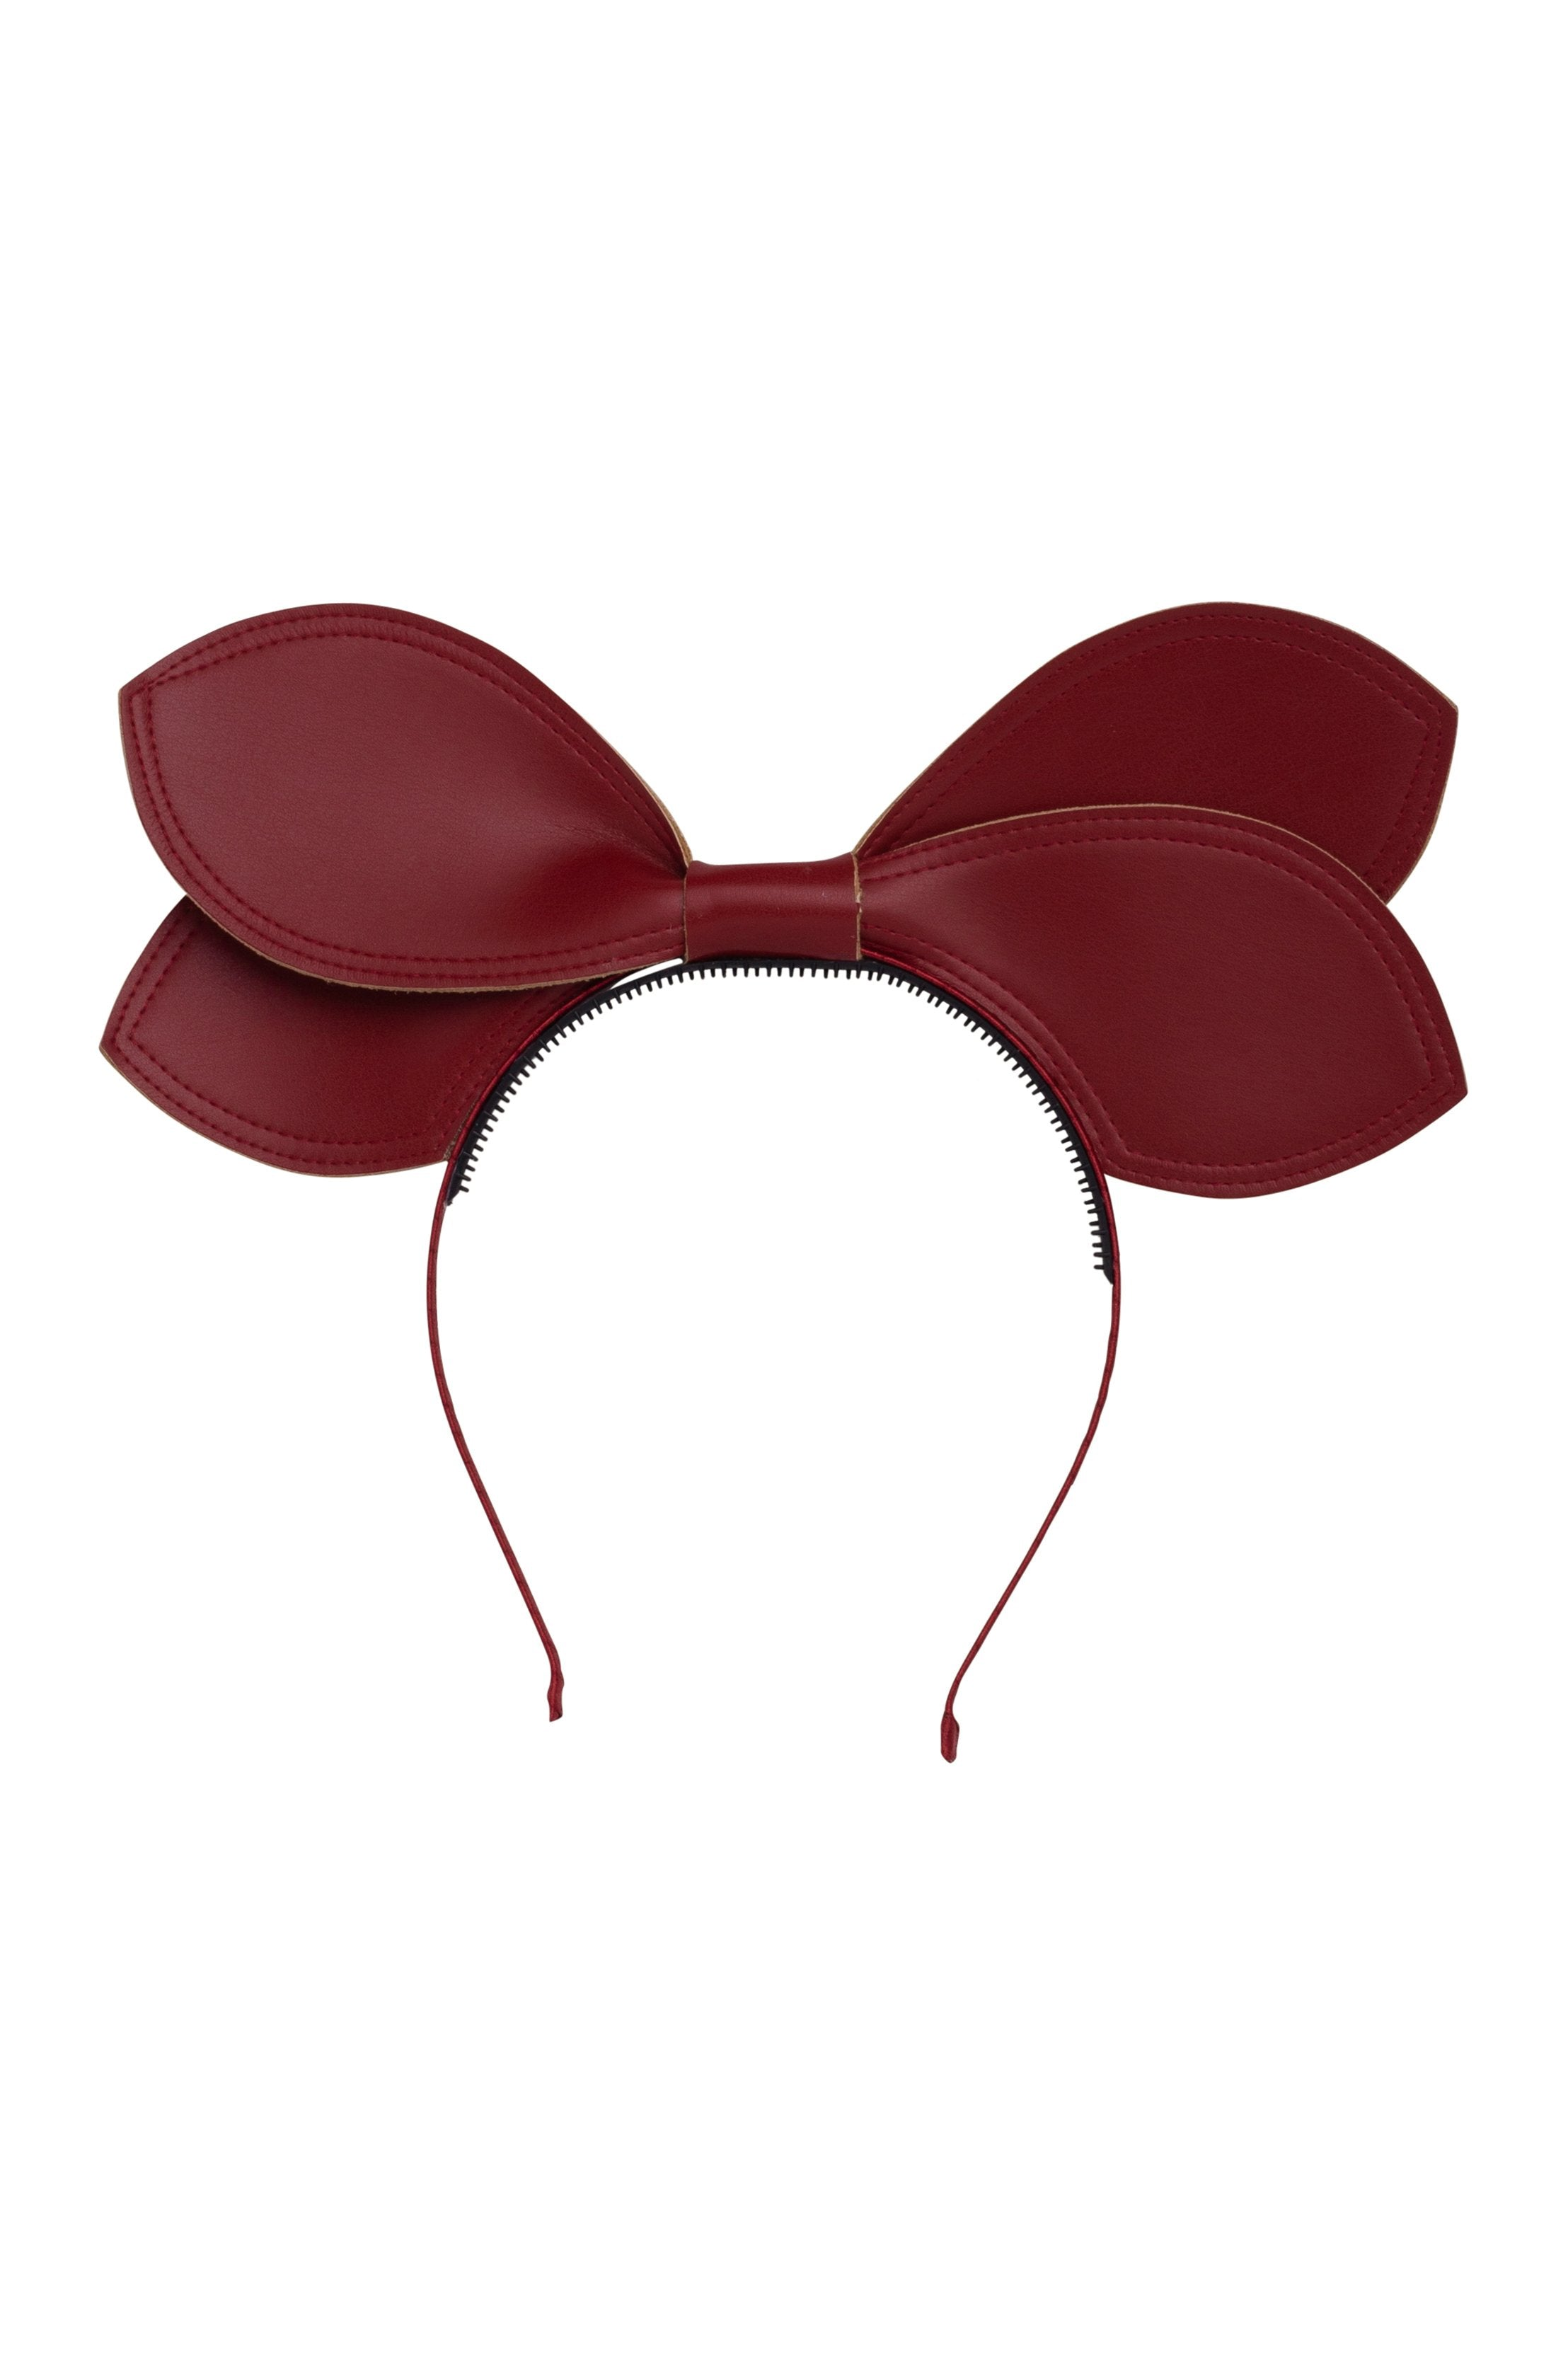 Growing Orchid Headband - Burgundy Leather